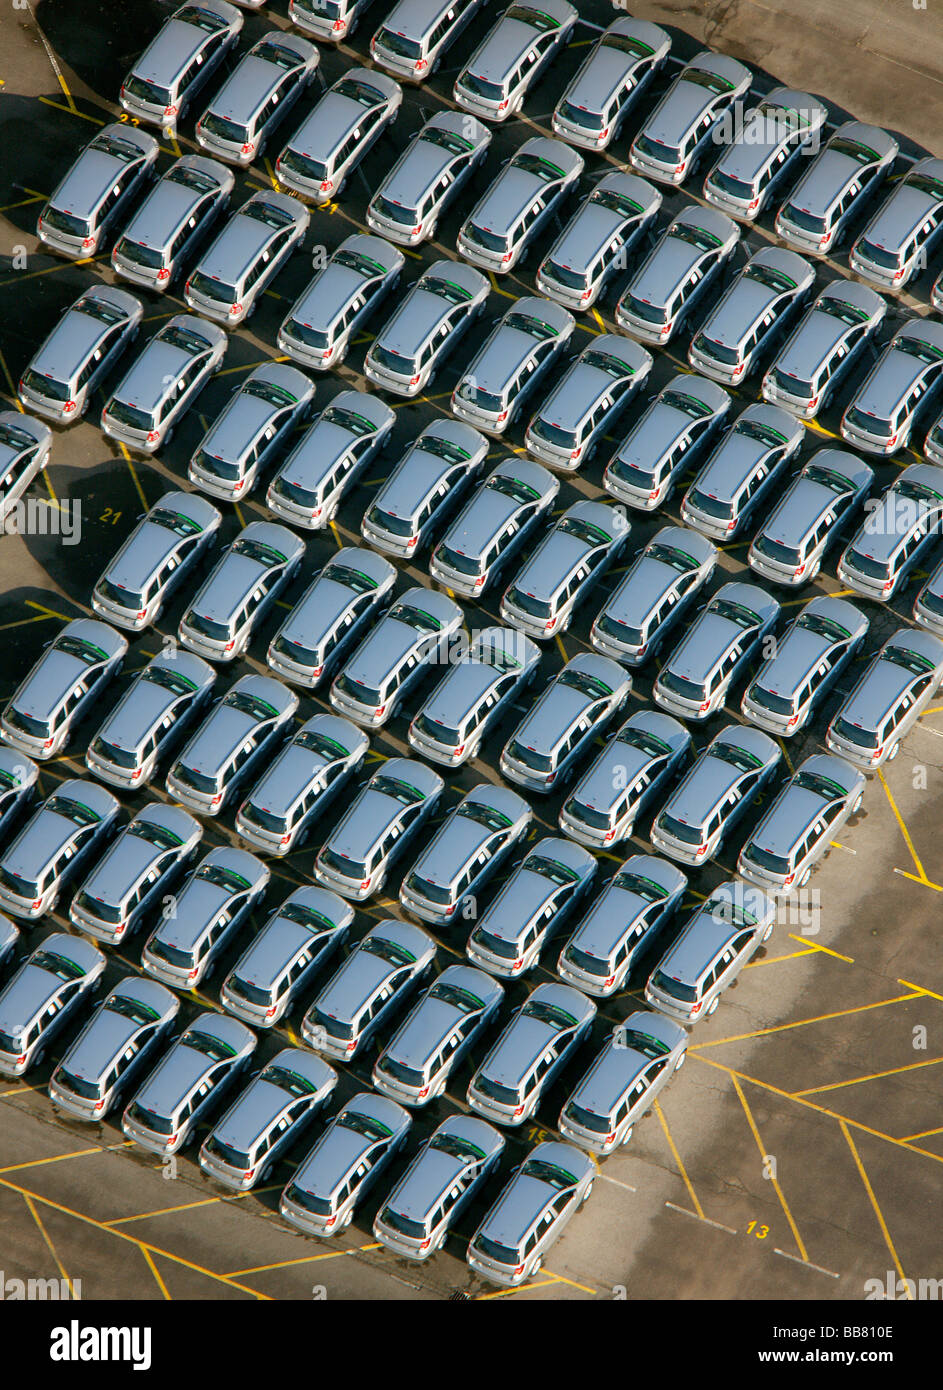 Aerial photo, OPEL Werk 1 Laer, Opel car factory plant 1, parking lot for new ZAFIRA cars before delivery, Bochum, - Stock Image